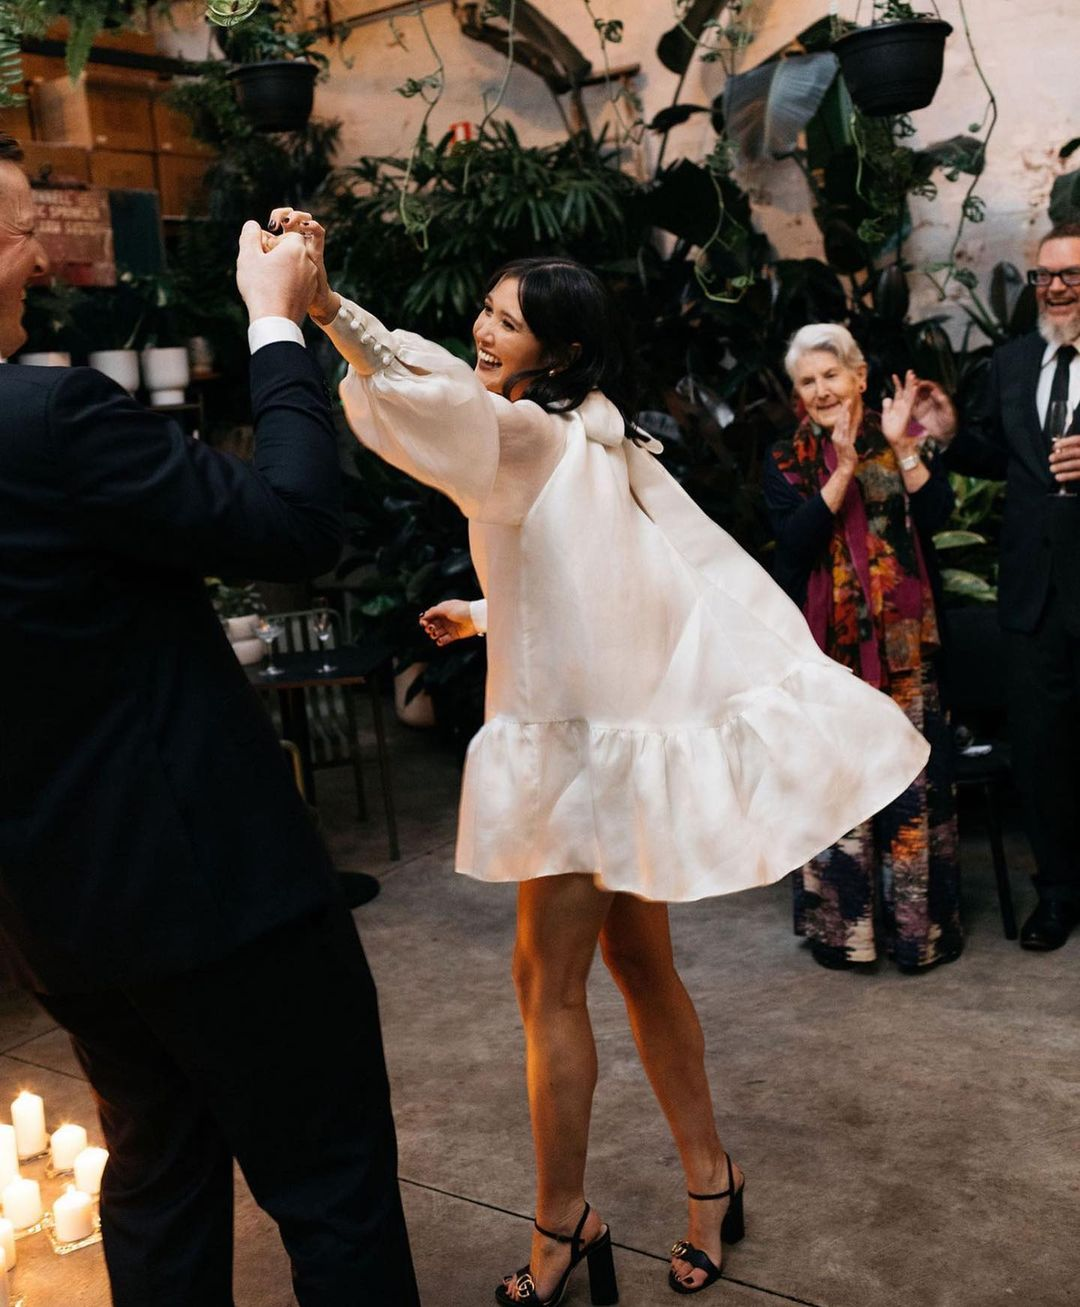 How-to-Manage-First-Dance-Wedding-Jitters-Bridal-Musings-DJ-Malike-9 How To Manage Wedding First Dance Jitters